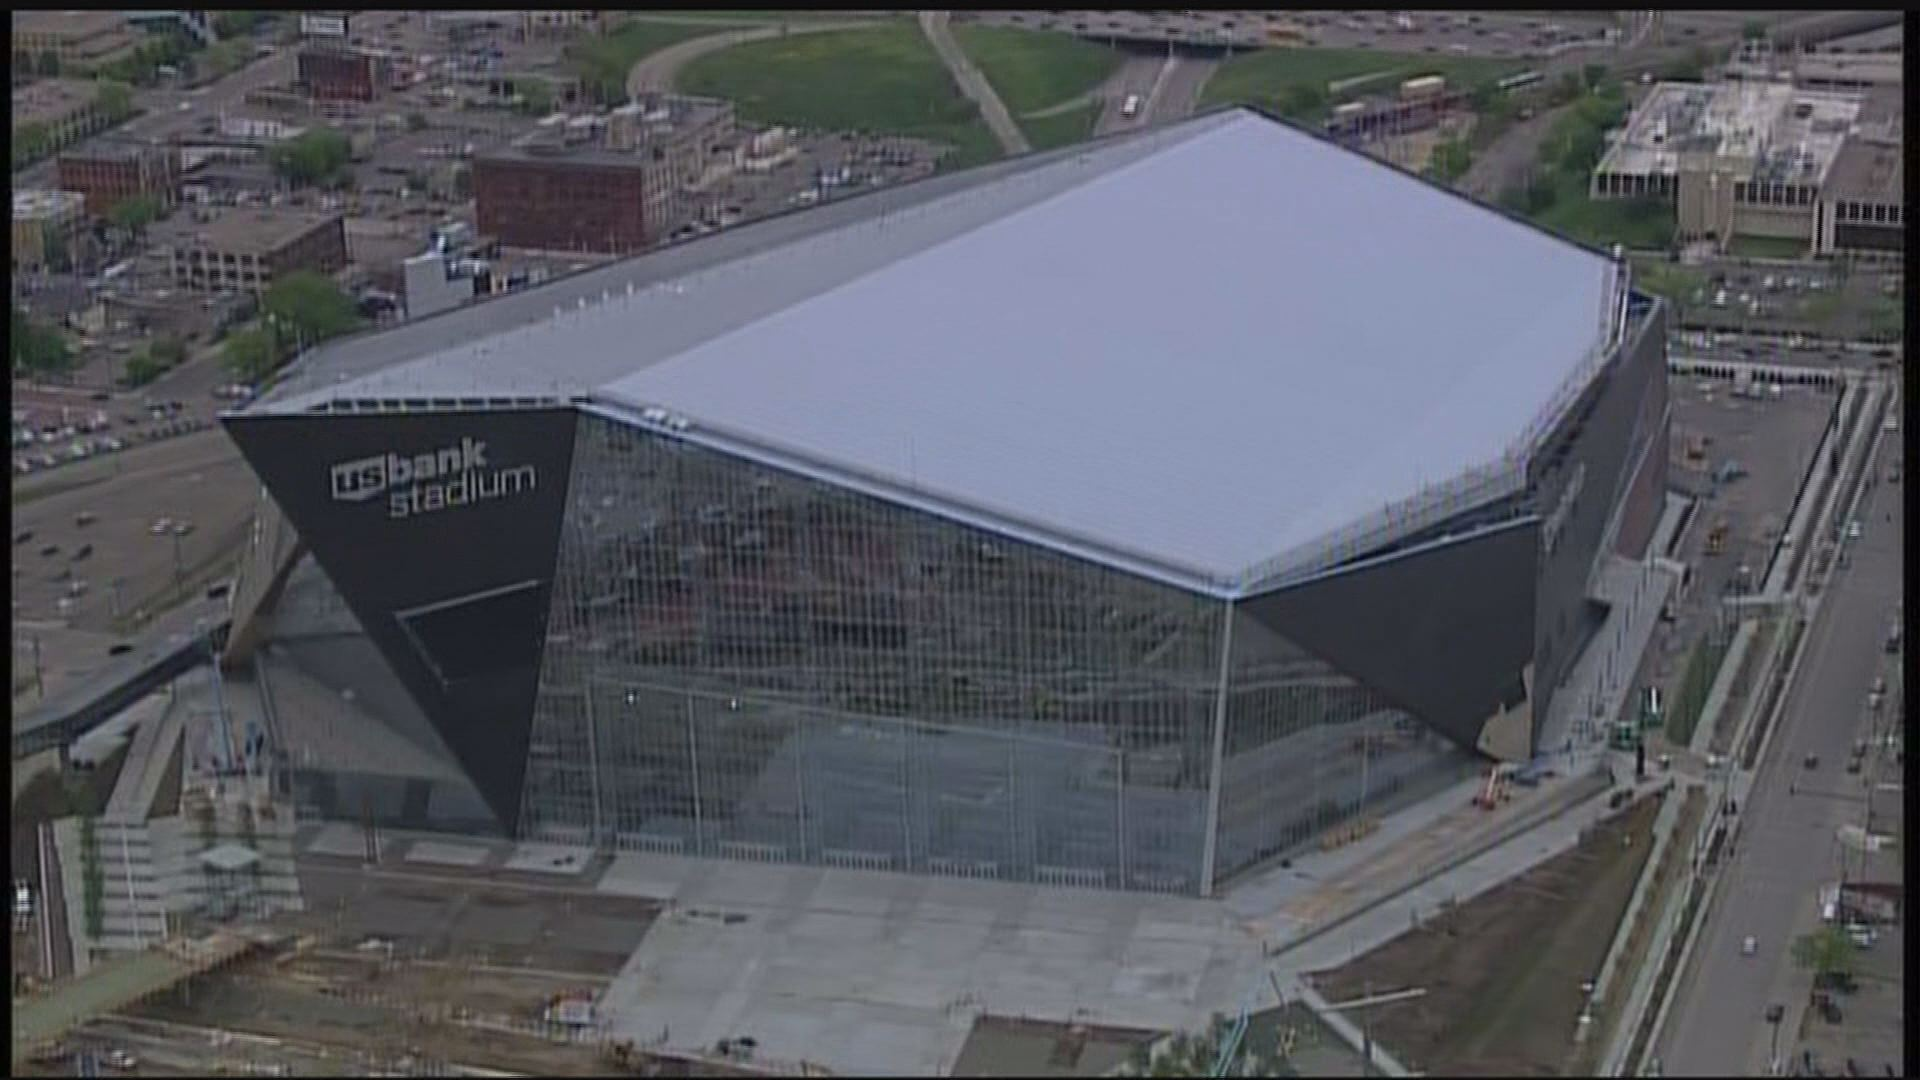 Guided tours of U.S. Bank Stadium to cost $19